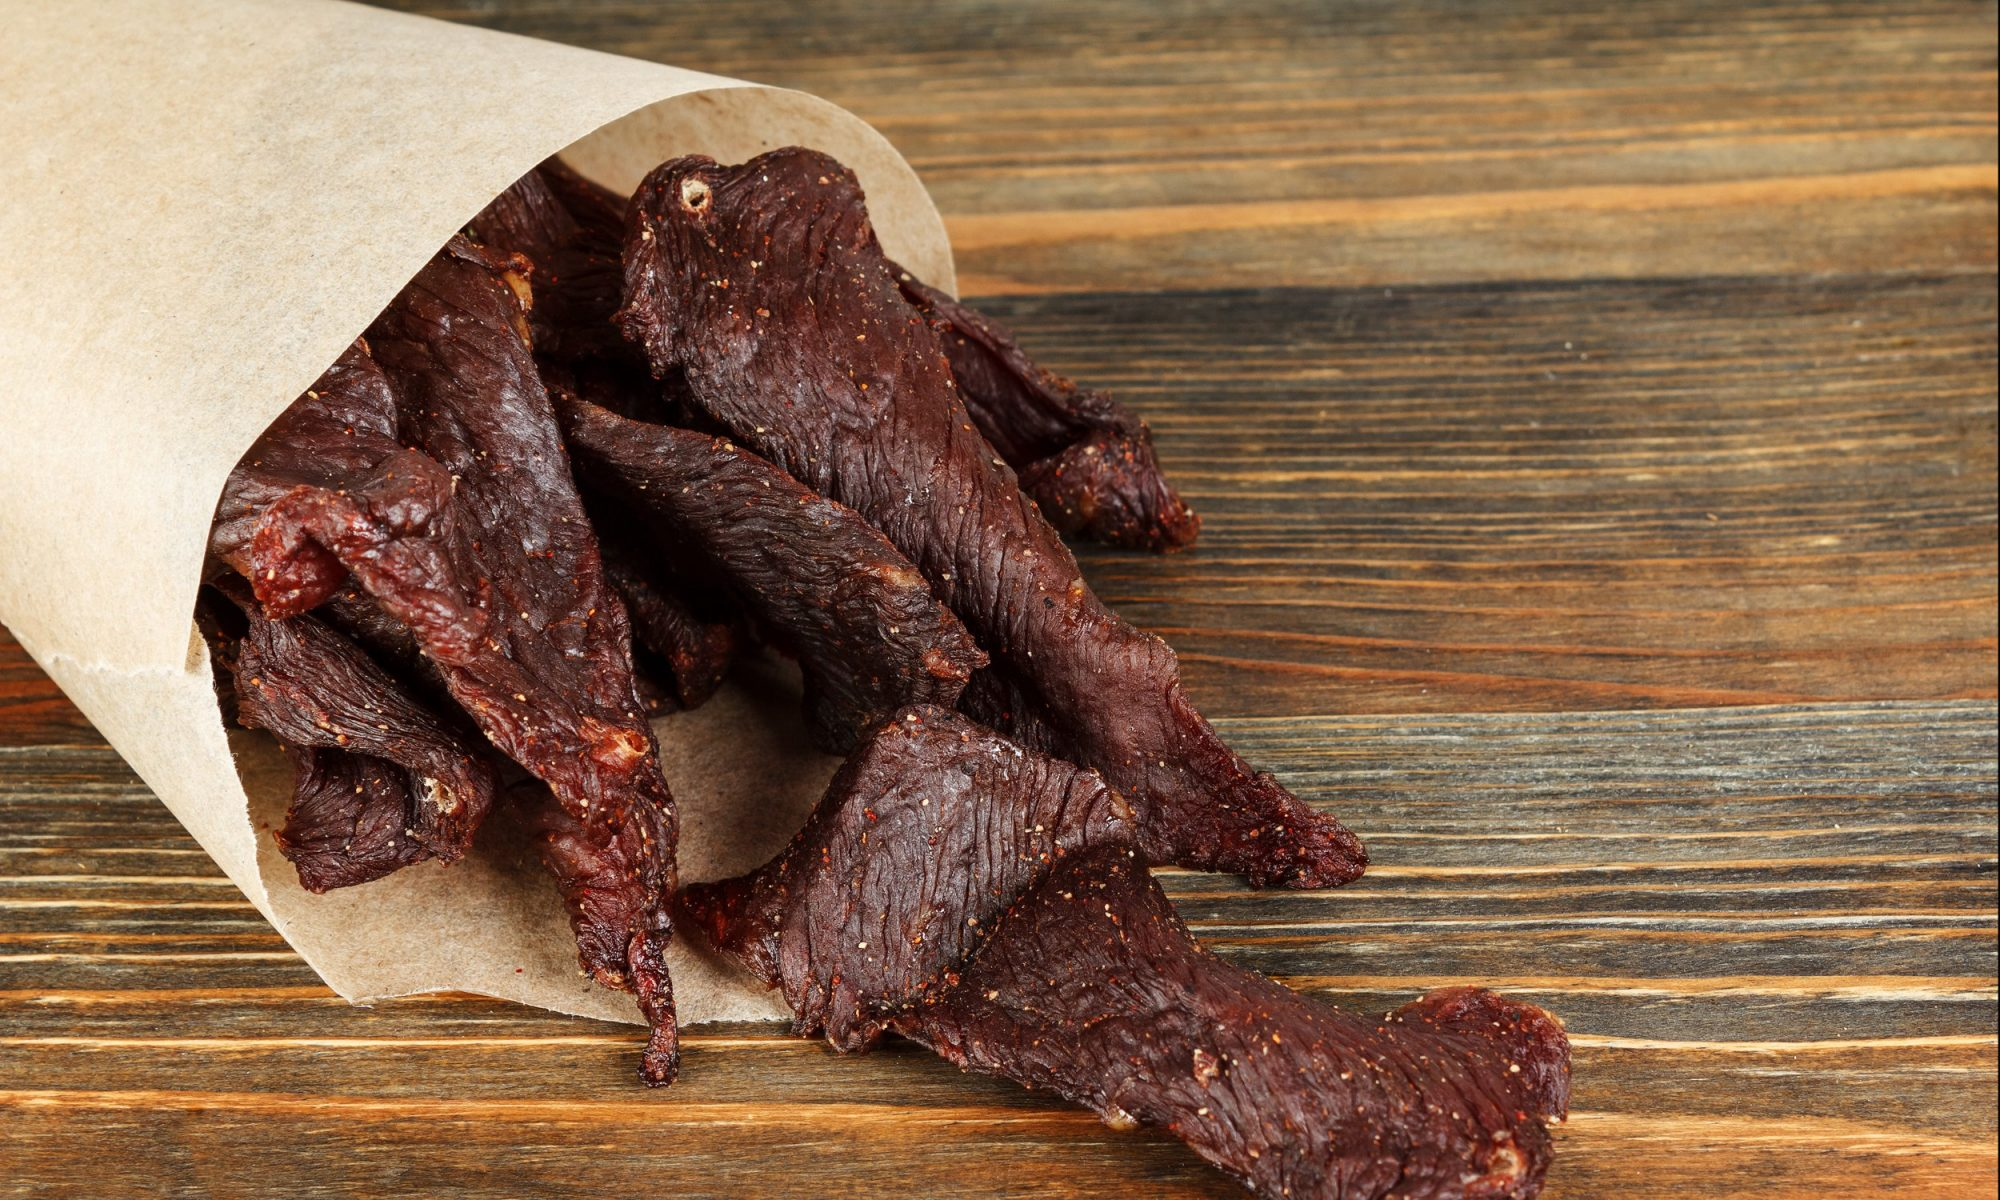 EC: My Doctor Told Me I Have to Eat Jerky for Breakfast